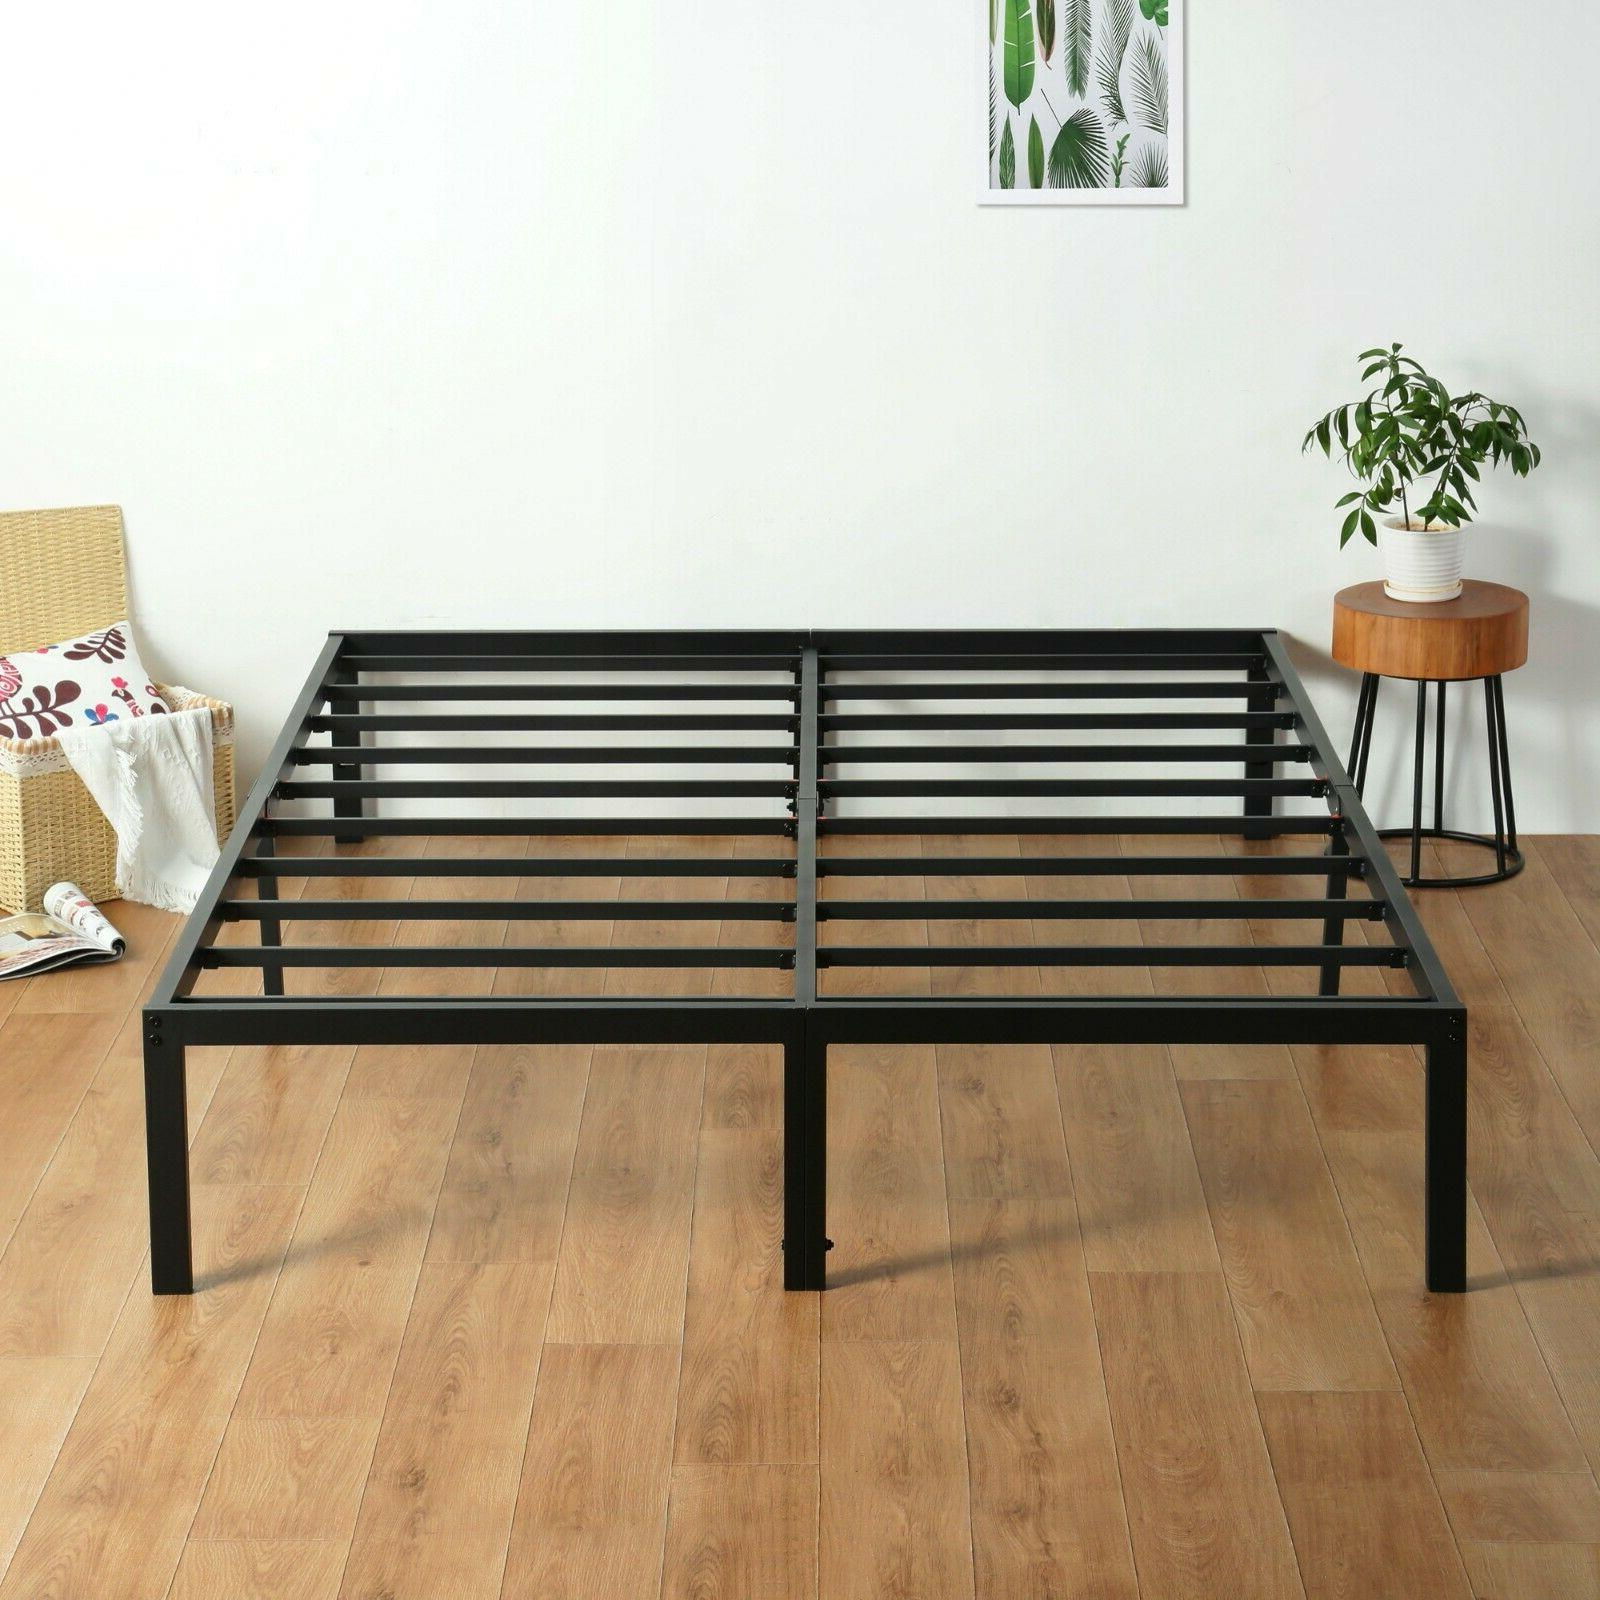 14 inch tall metal frame and slat